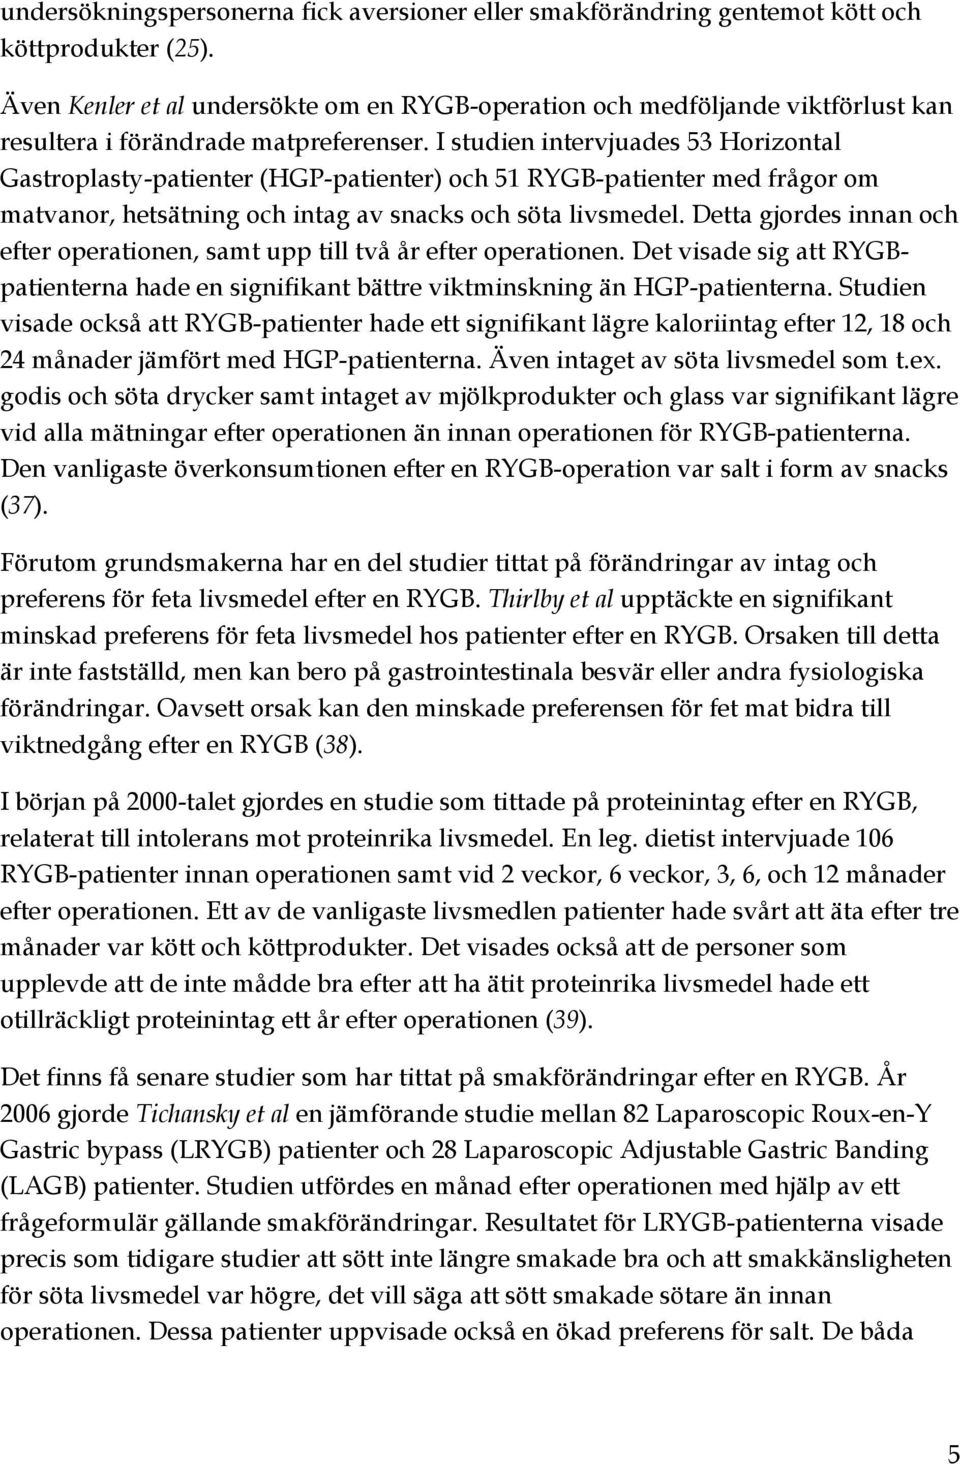 I studien intervjuades 53 Horizontal Gastroplasty-patienter (HGP-patienter) och 51 RYGB-patienter med frågor om matvanor, hetsätning och intag av snacks och söta livsmedel.